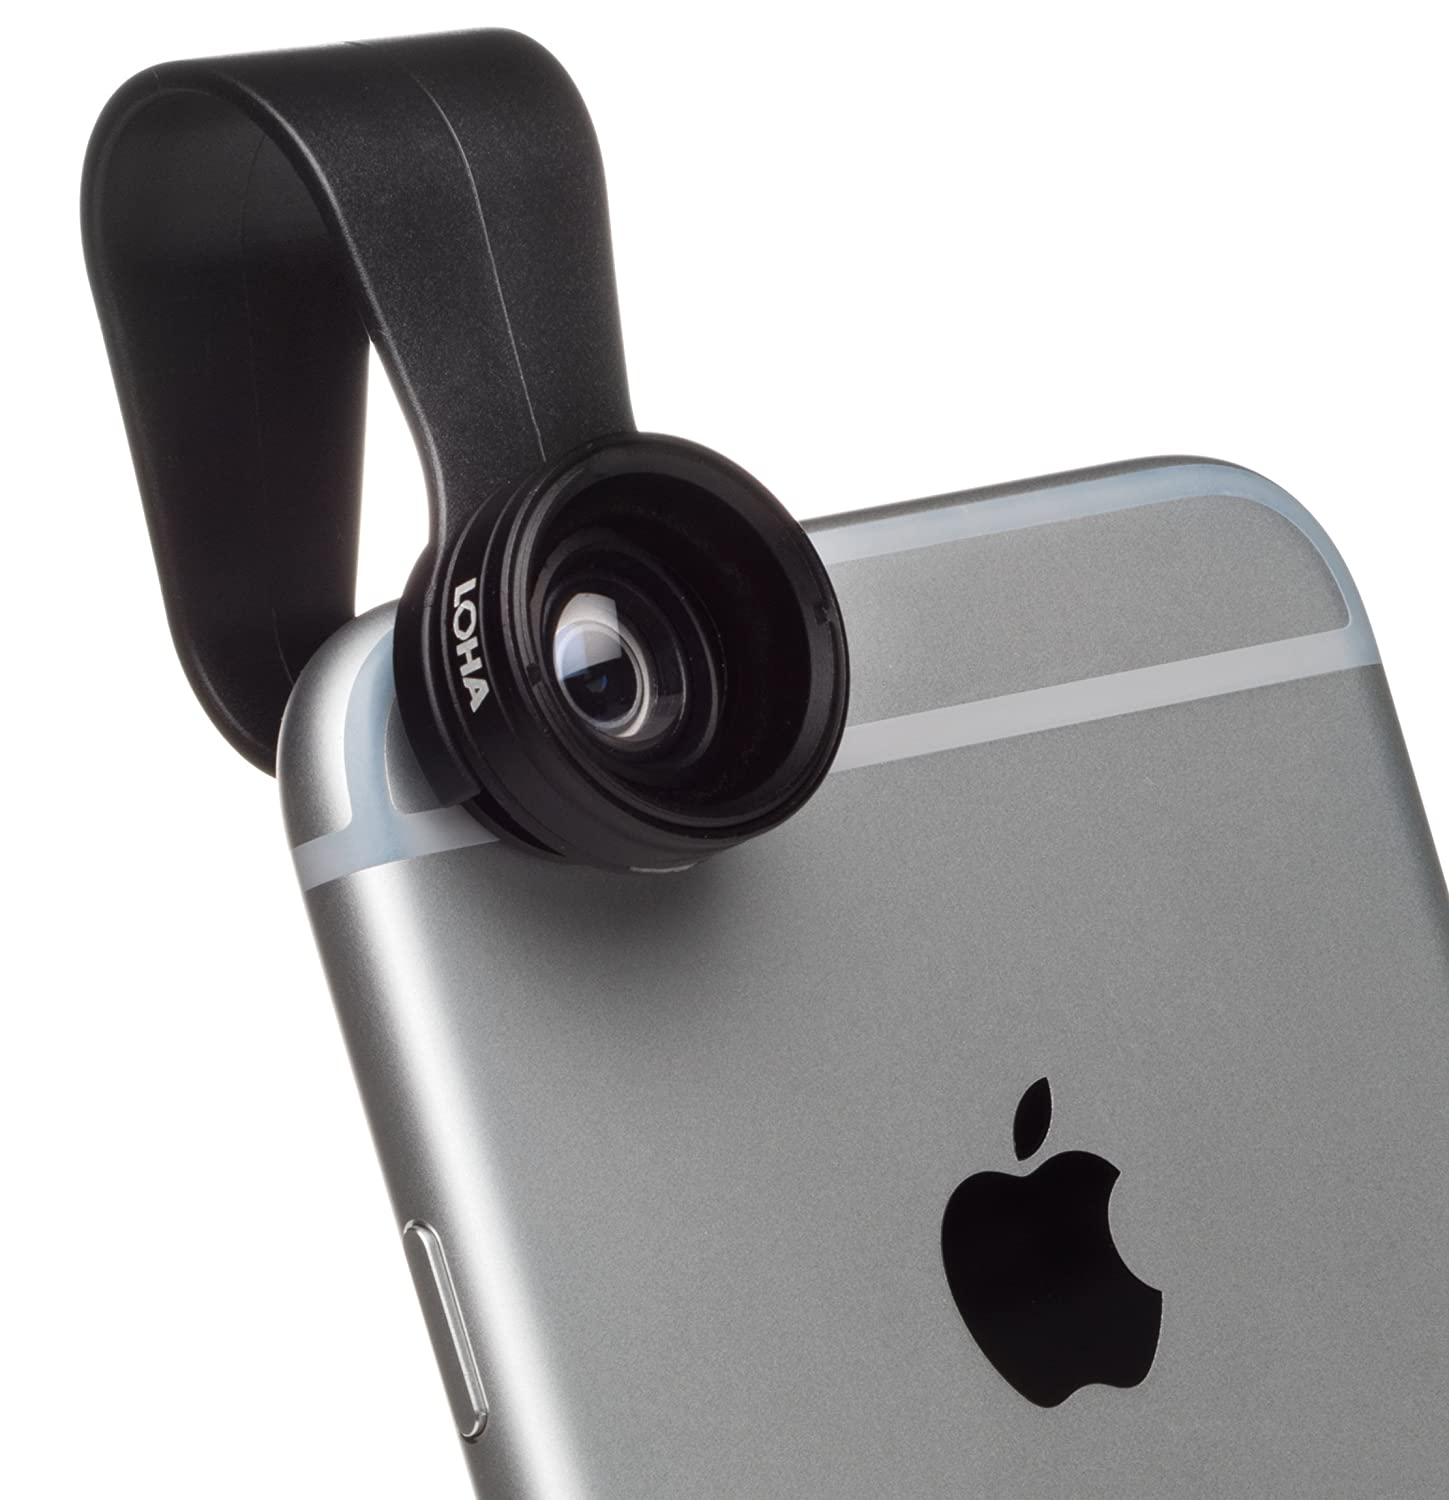 Amazoncom IPhone Camera Lens By LOHA Compact Design - Smartphones mean you dont need a fancy camera to take an amazing photo